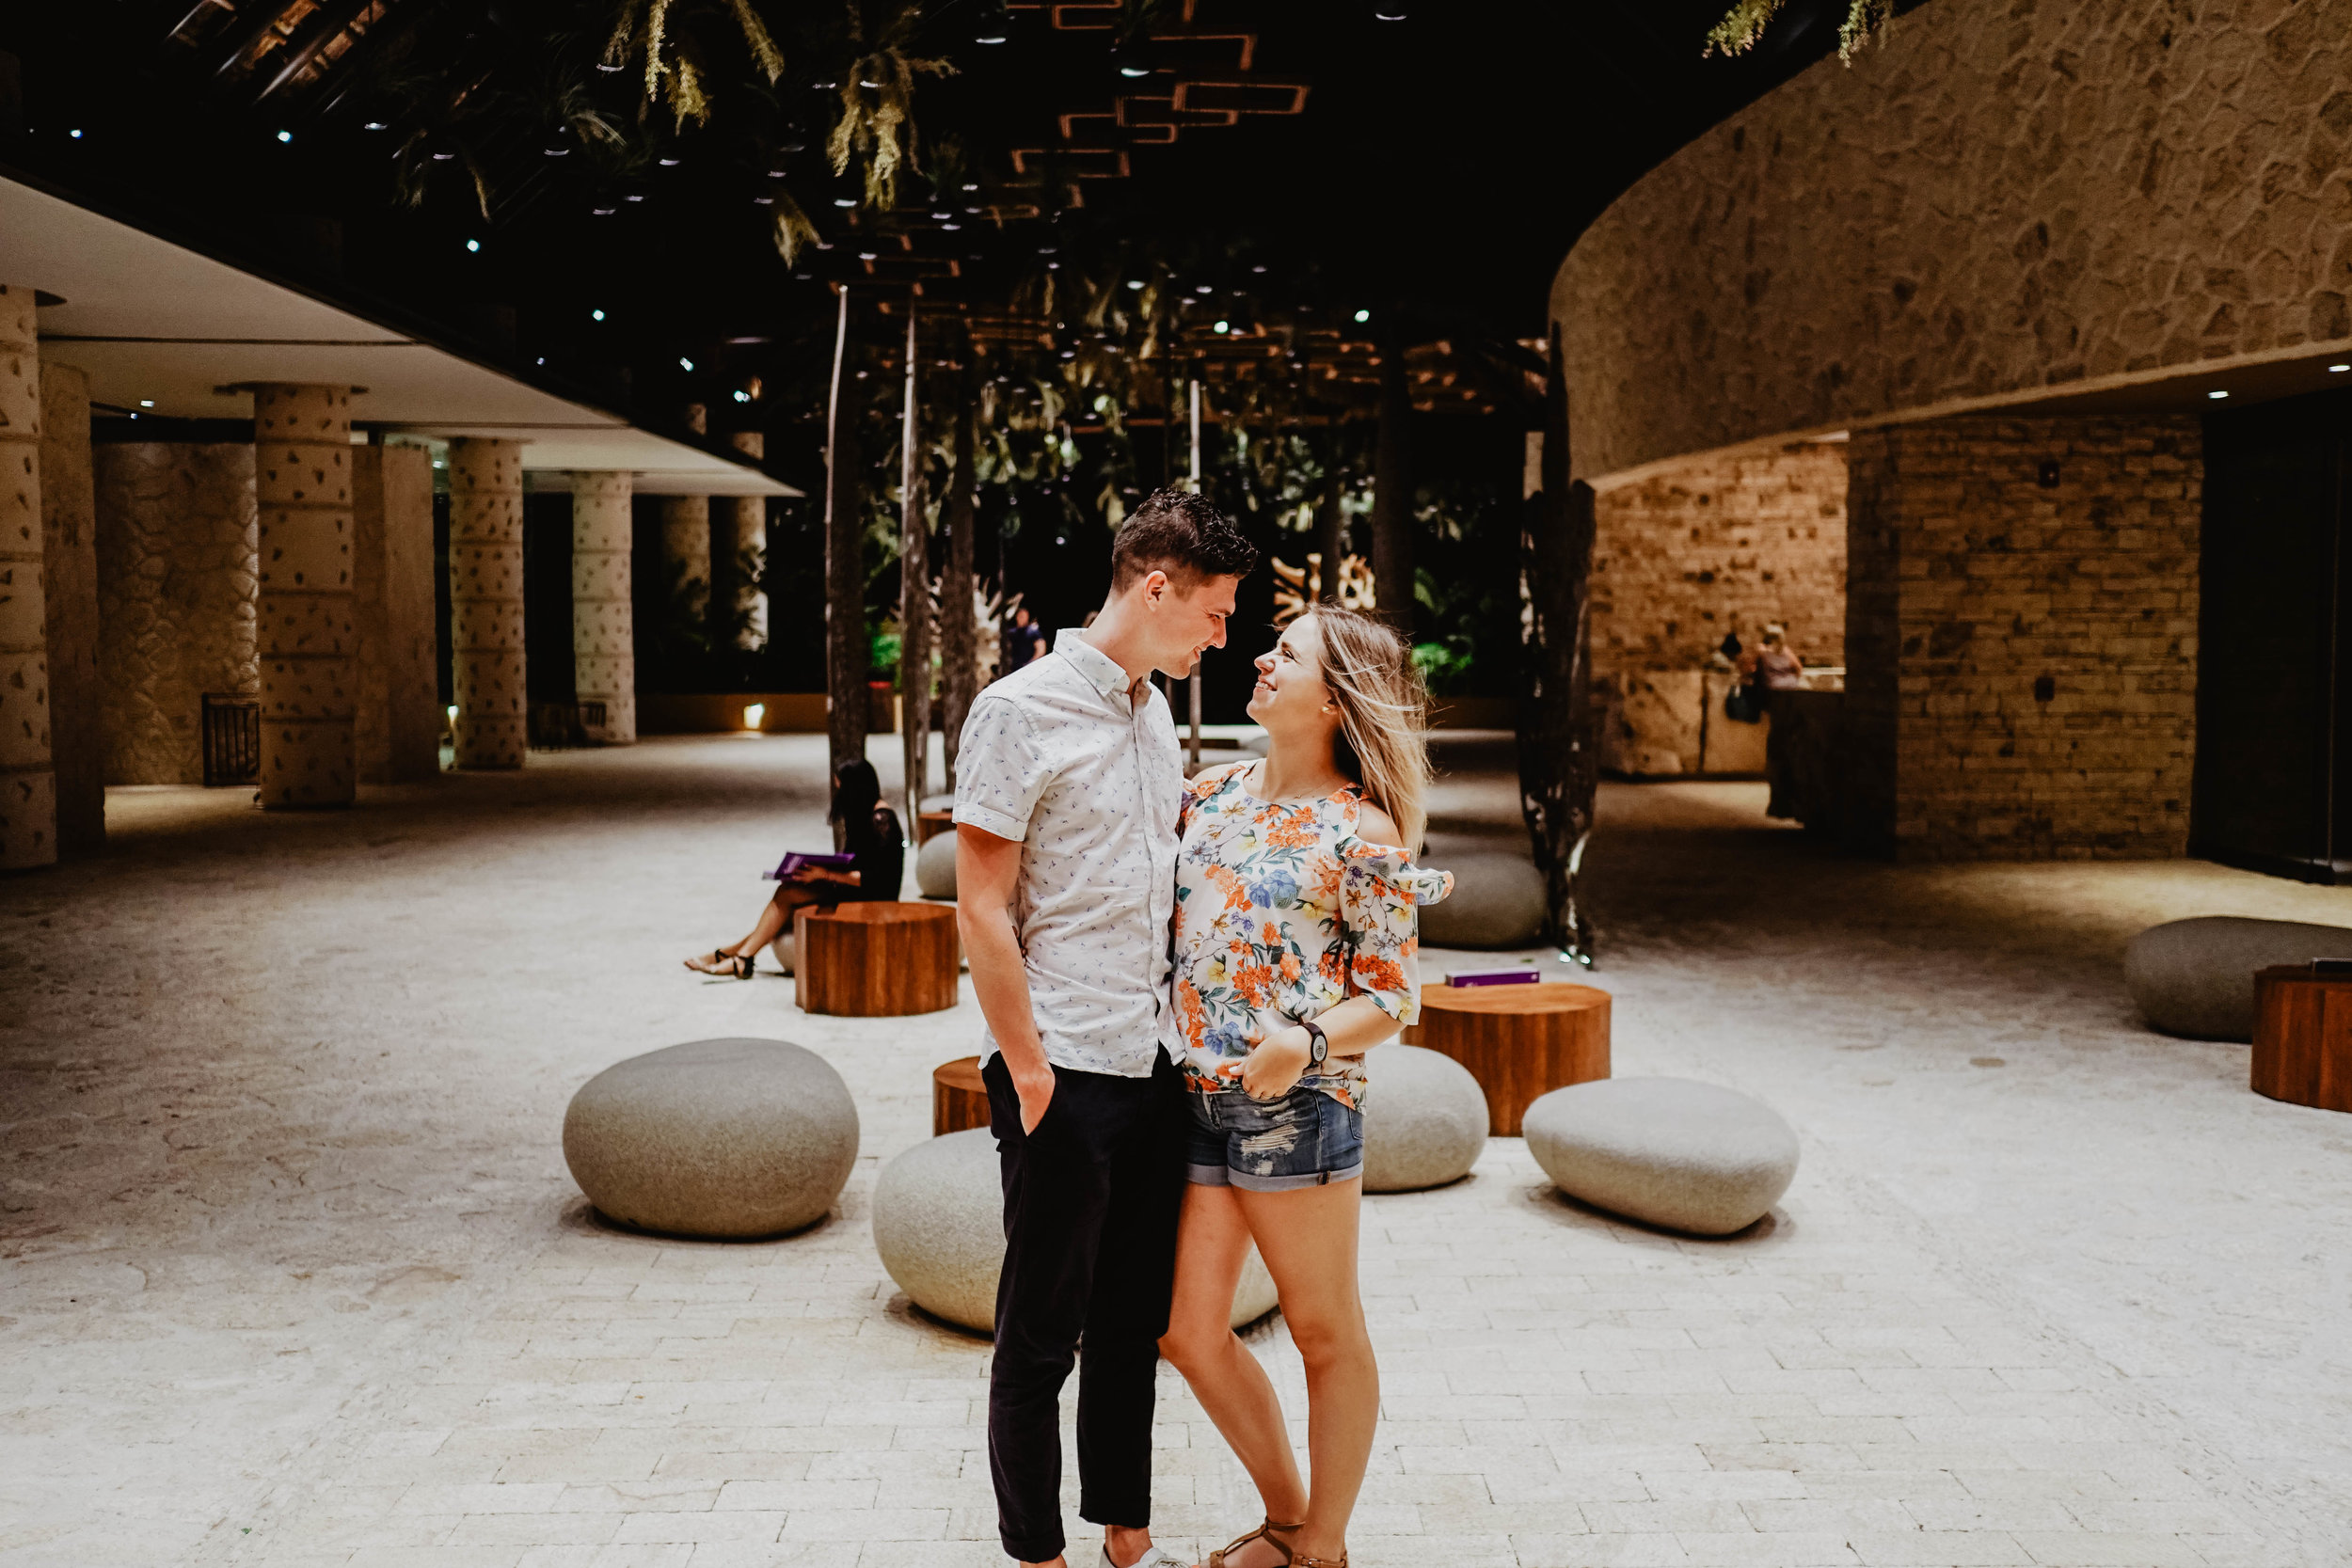 A couple posing for a photo in the lobby of Hotel Xcaret Mexico